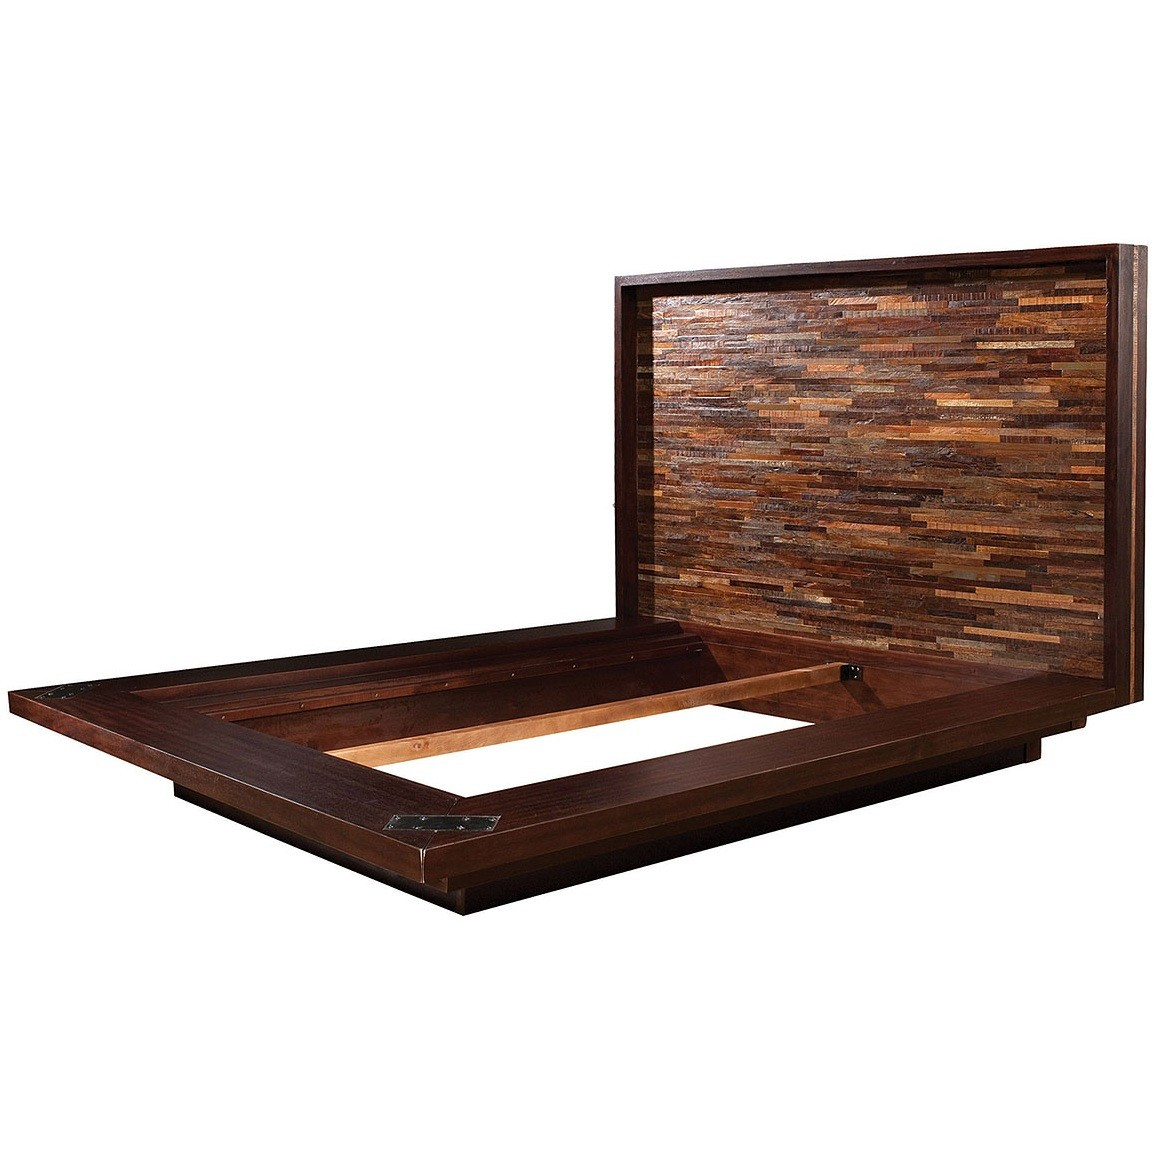 wood_bed_frame_solid_wood_platform_bed_frame_reclaimed_wood_platform ...